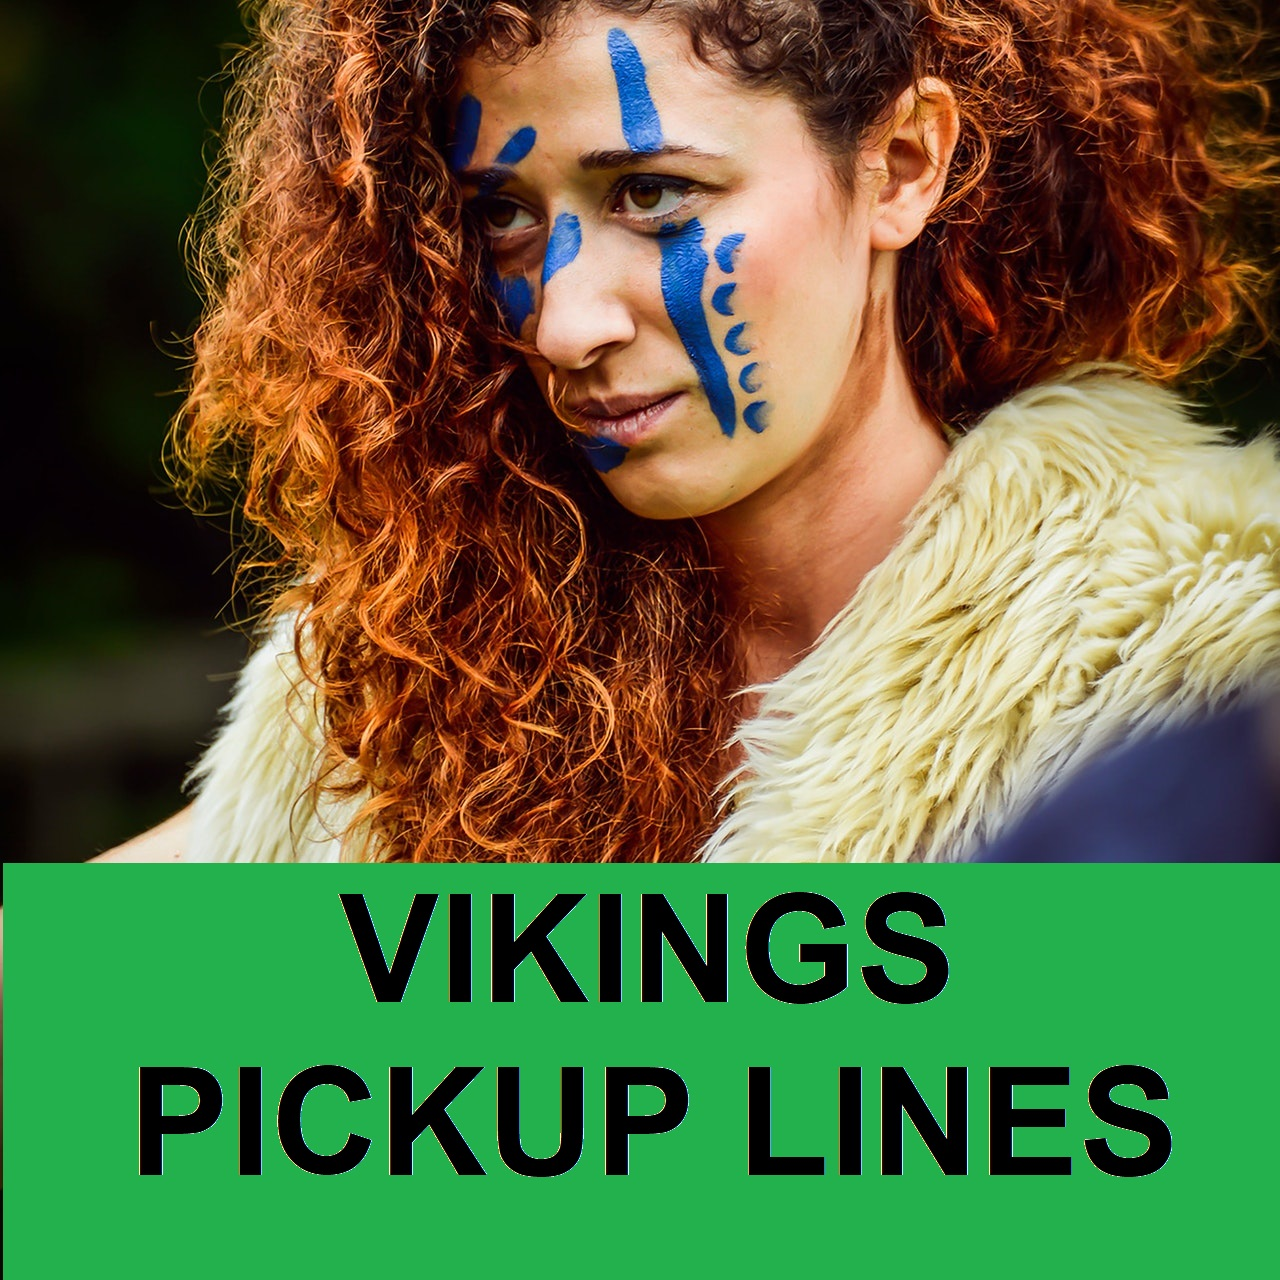 Vikings Chivalry Pick Up Lines To Take You in Medieval Time!